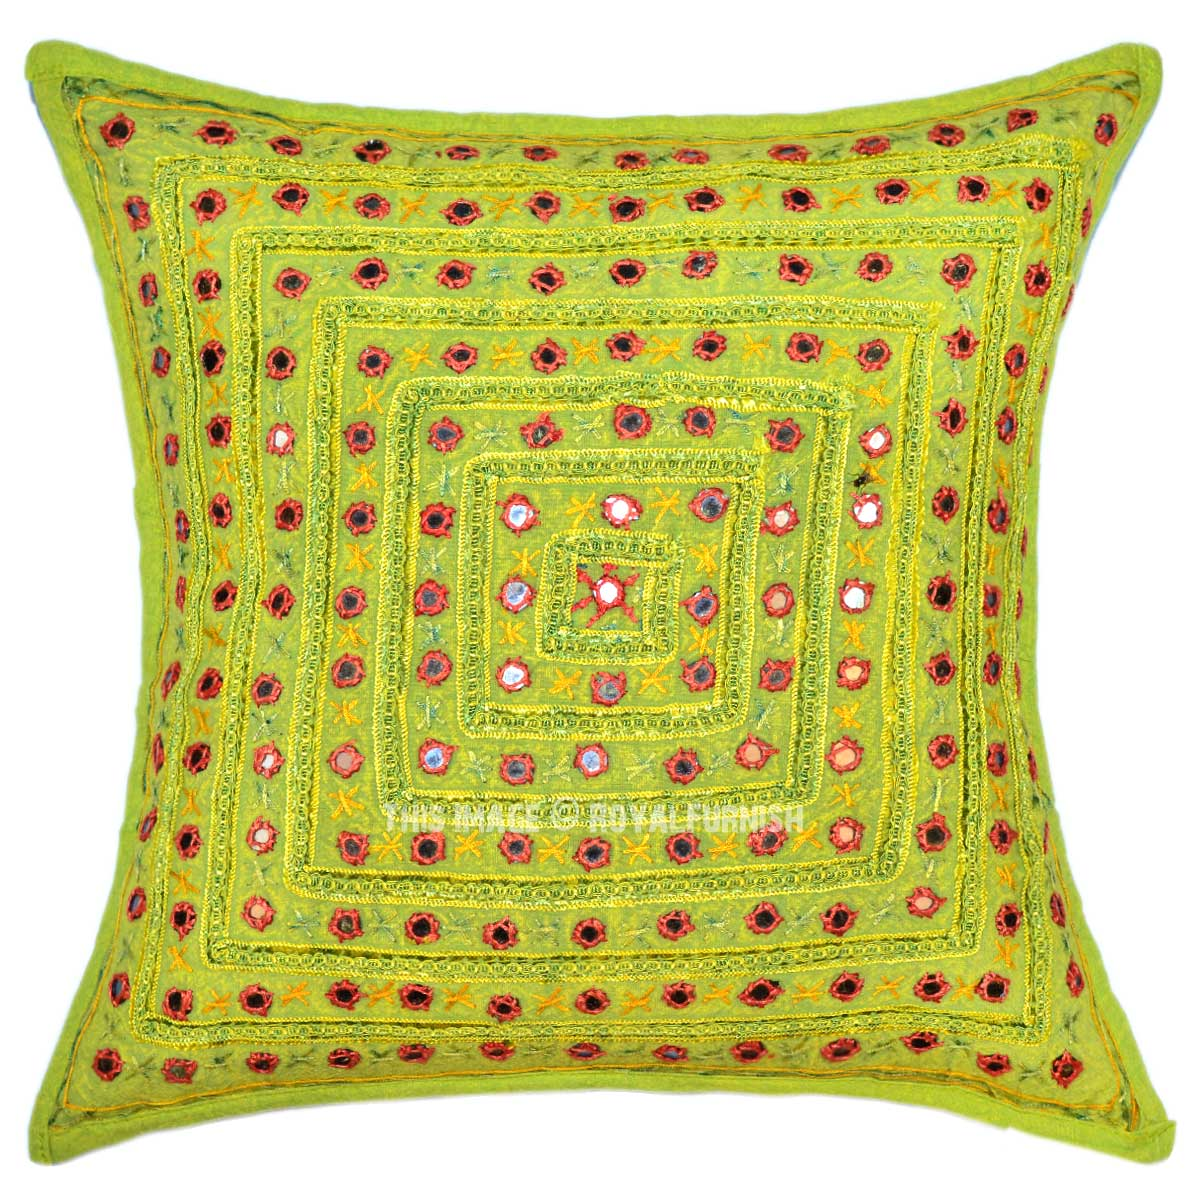 Handmade Unique Mirror Embroidered Green Boho Accent Throw Pillow Cover 16X16 - RoyalFurnish.com